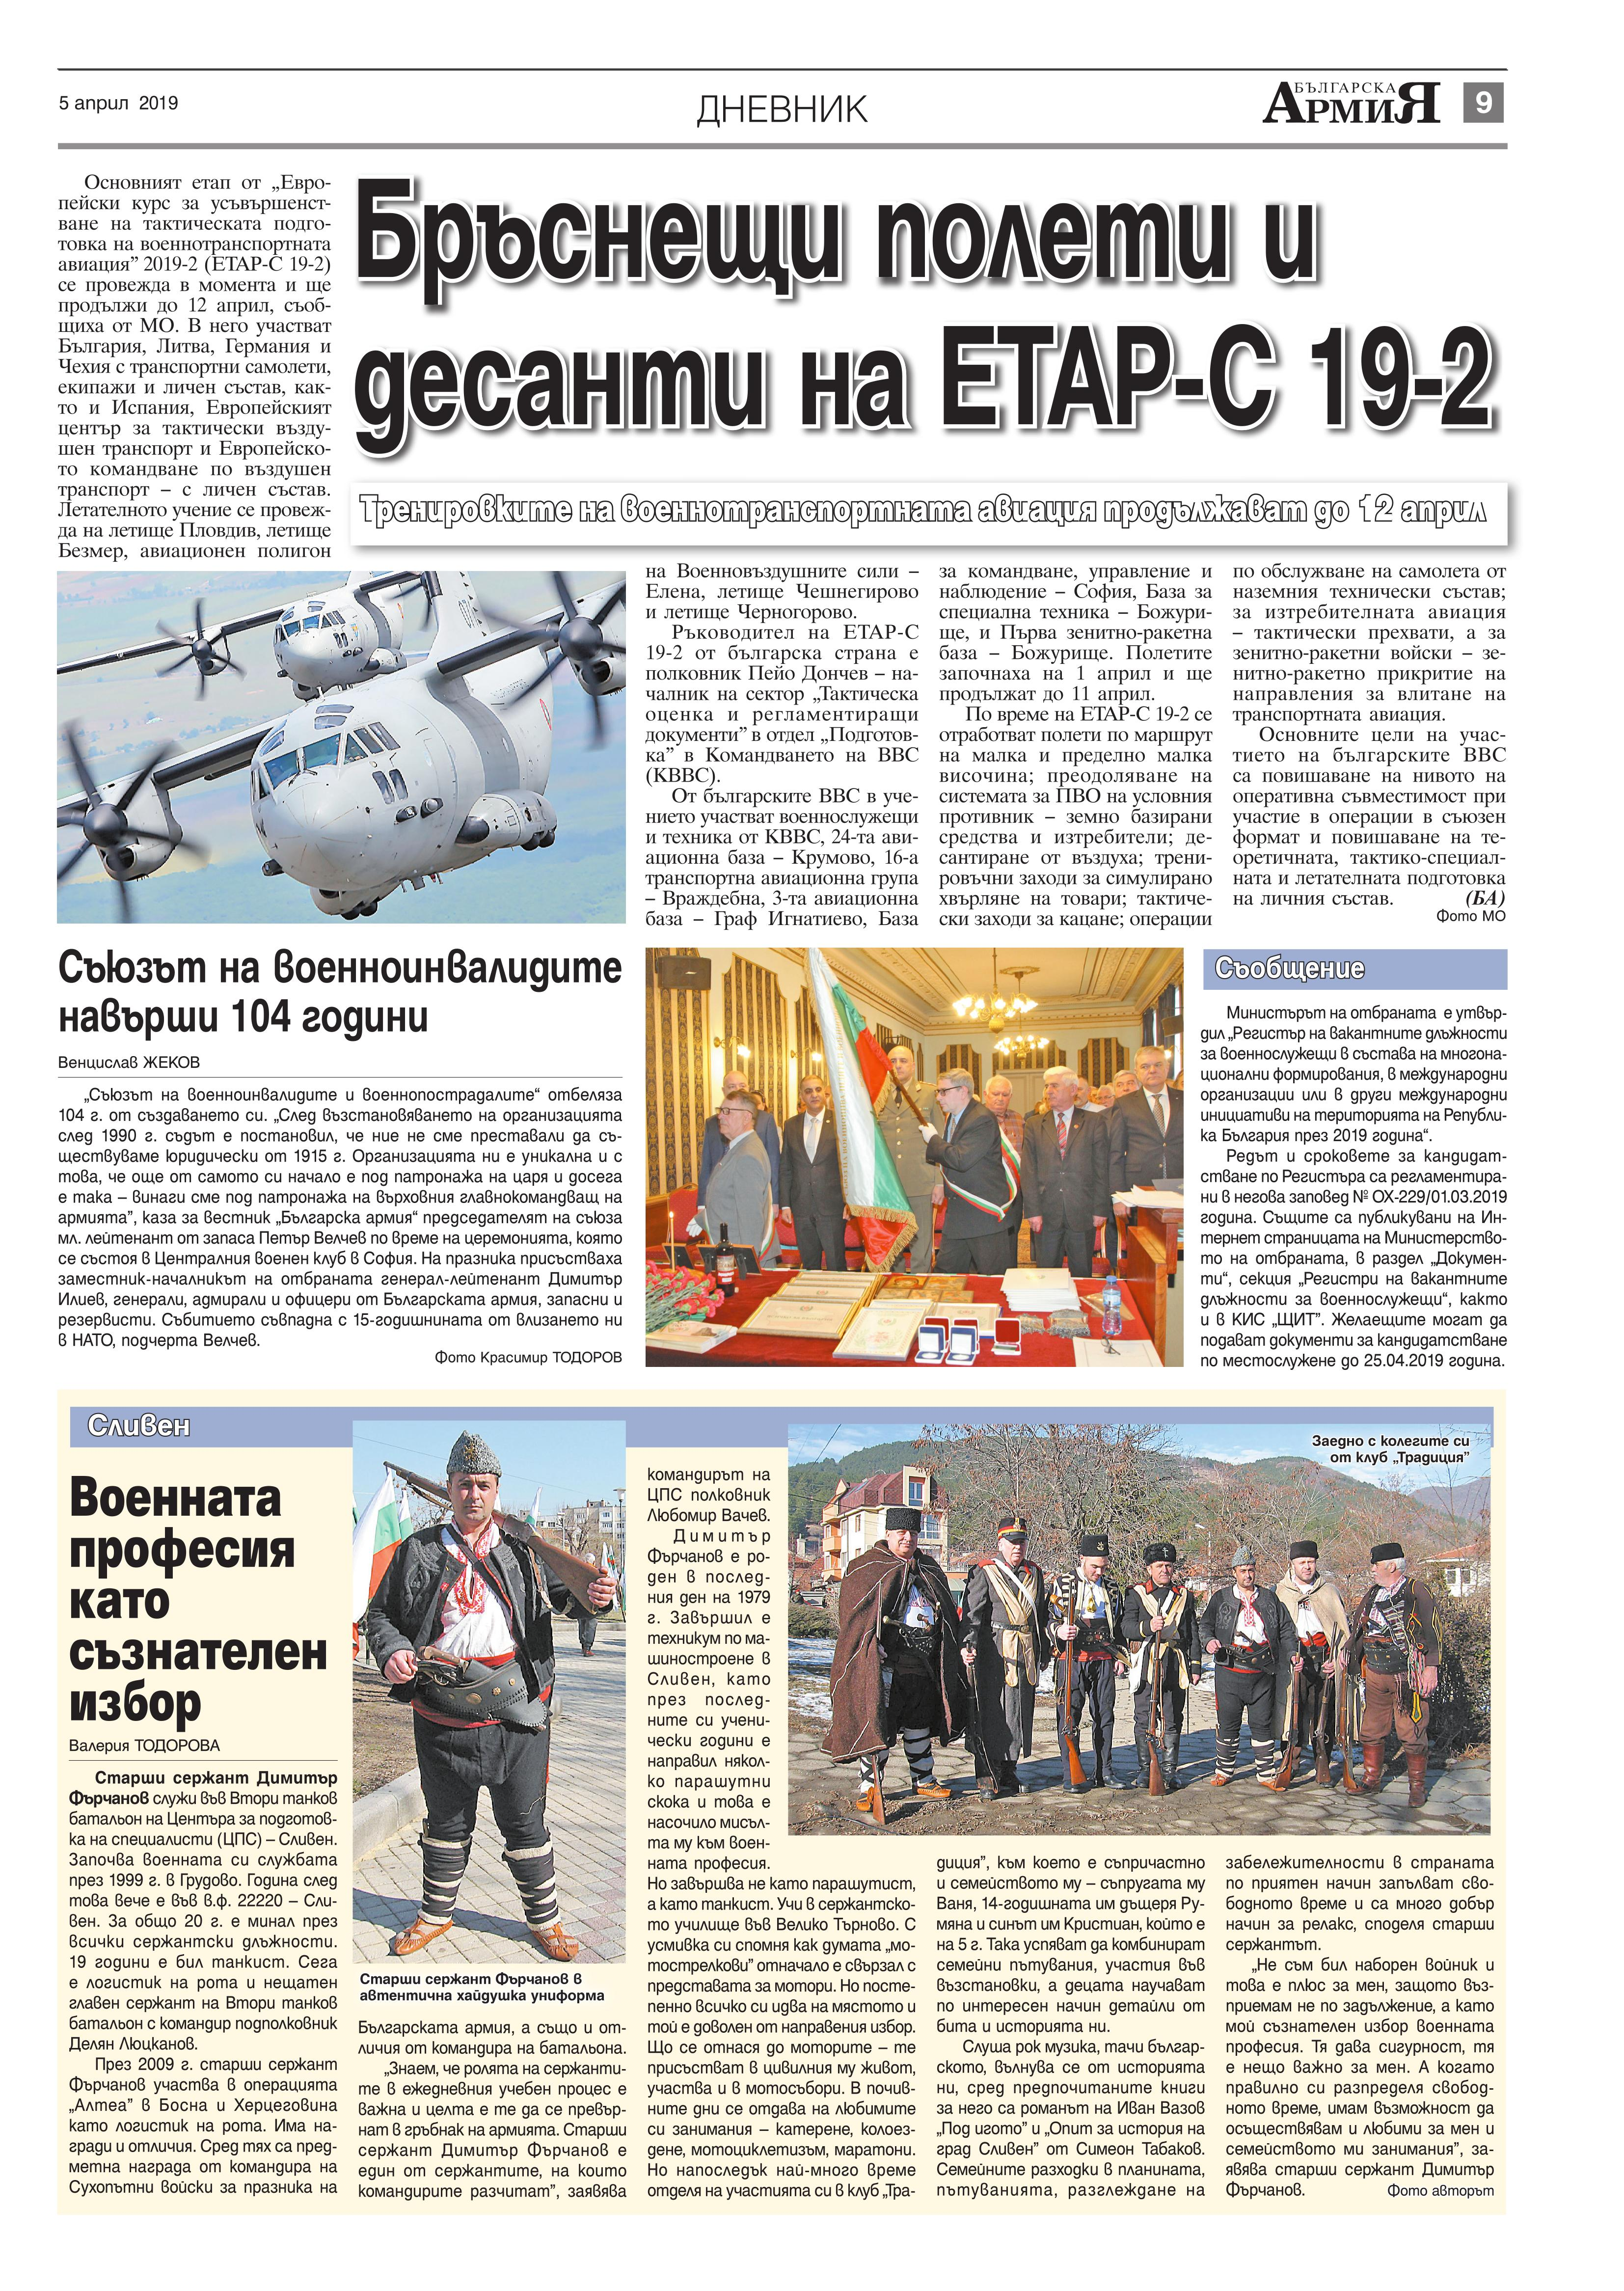 https://armymedia.bg/wp-content/uploads/2015/06/09.page1_-88.jpg